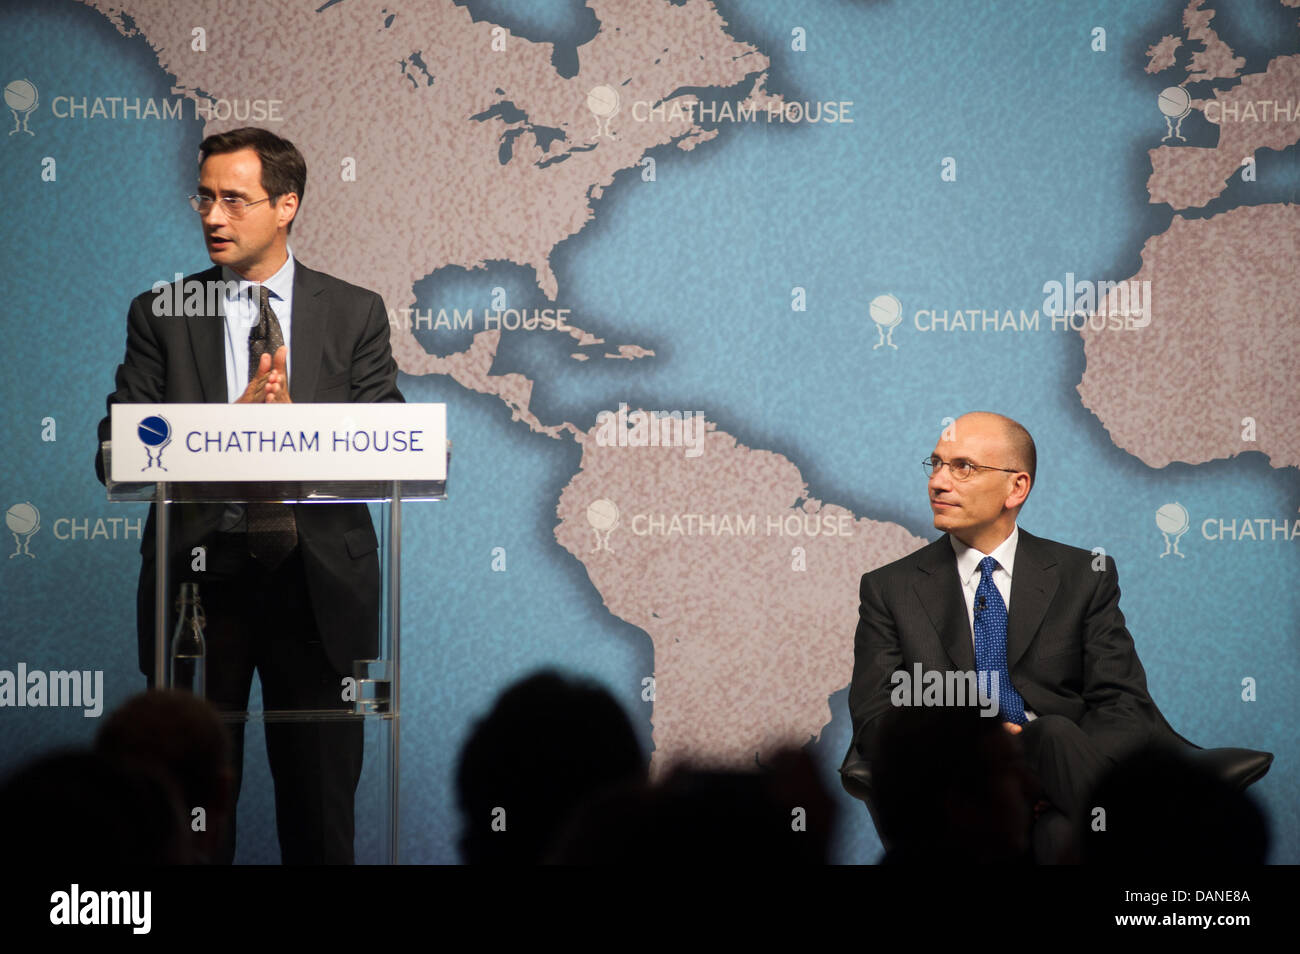 London, UK. 16th July, 2013. Italian Prime Minister Enrico Letta speaks at Chatham House during a meeting on the - Stock Image